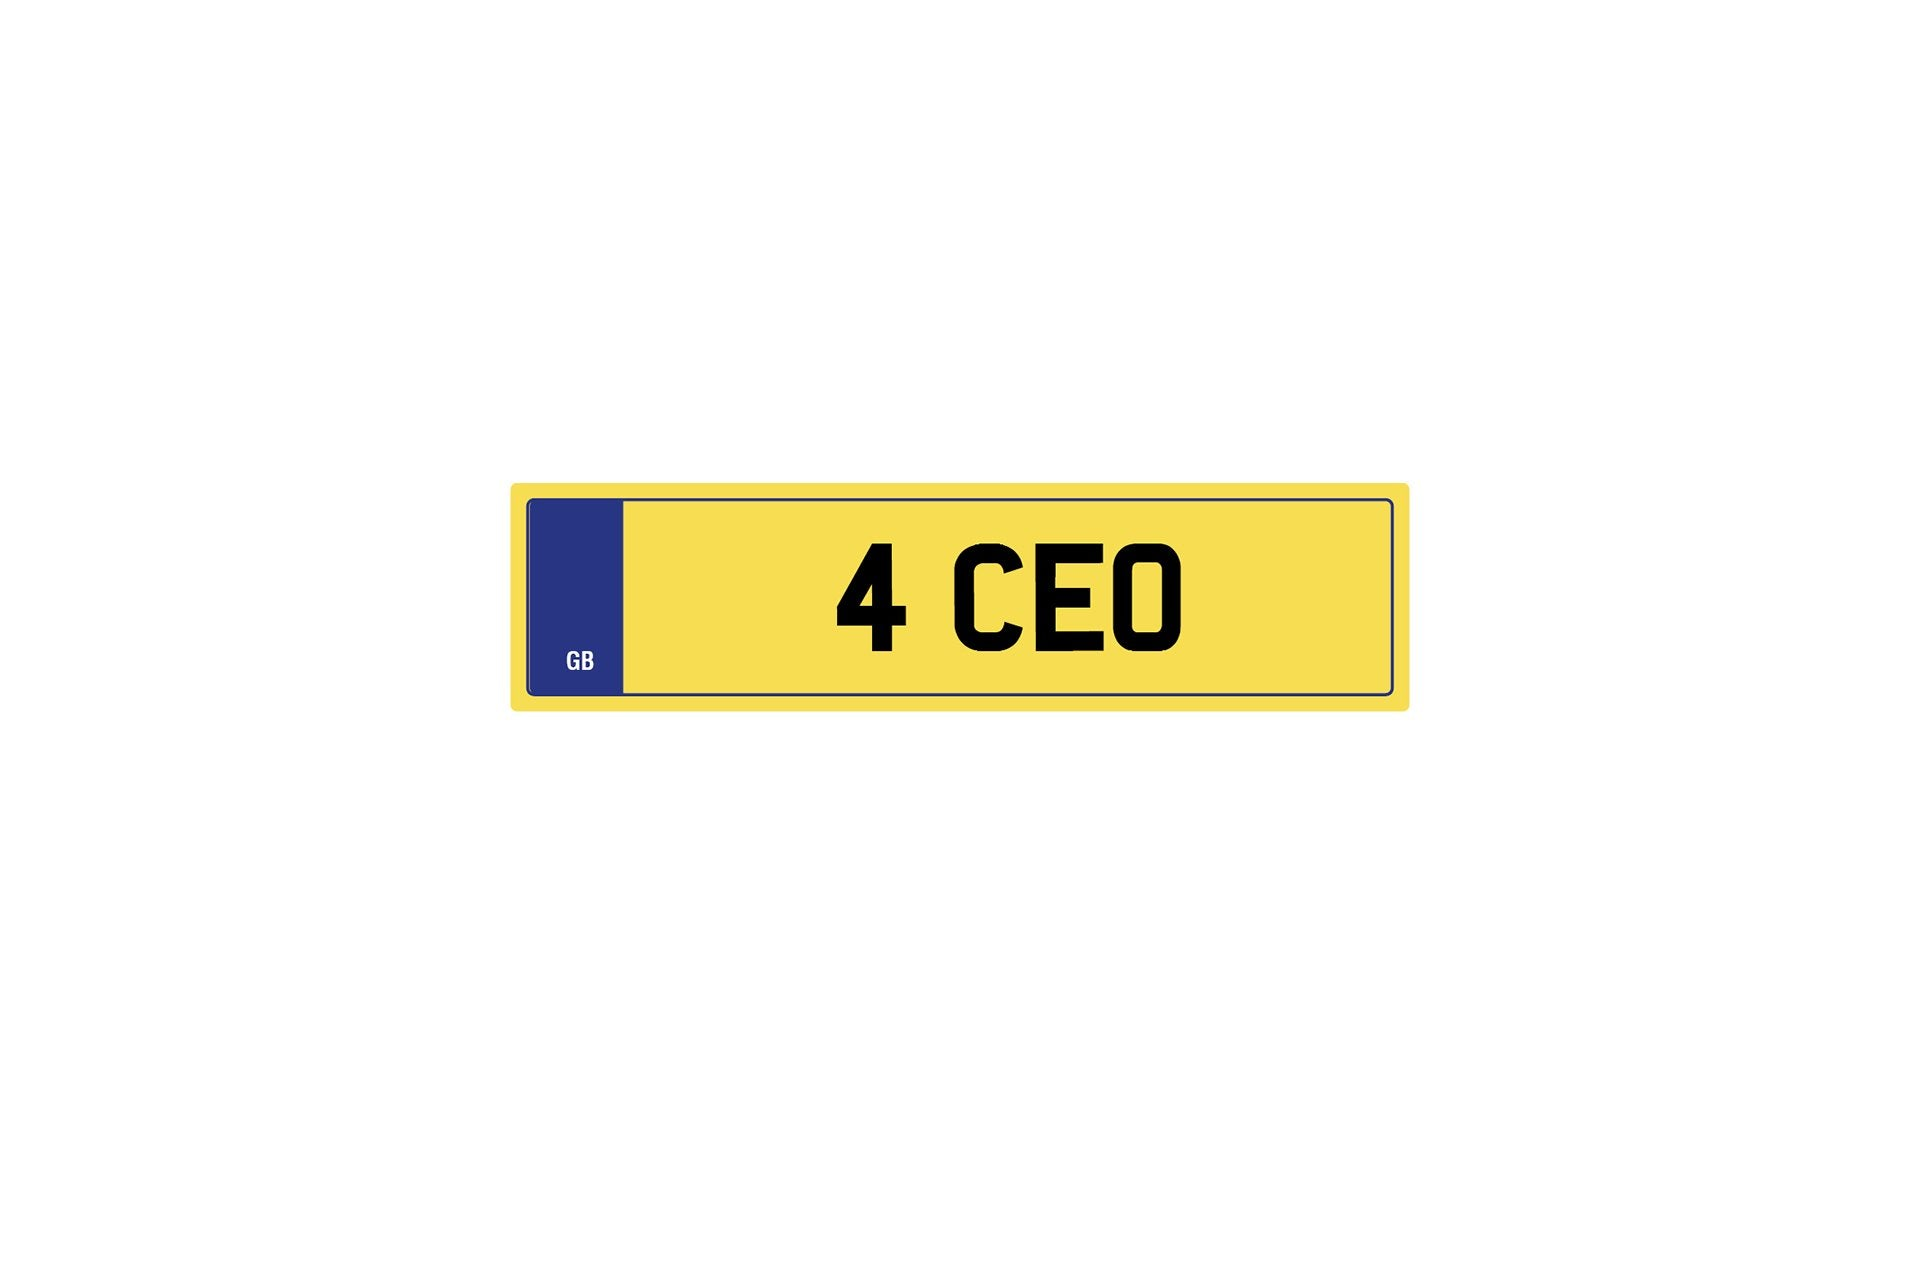 Private Plate 4 Ceo by Kahn - Image 275